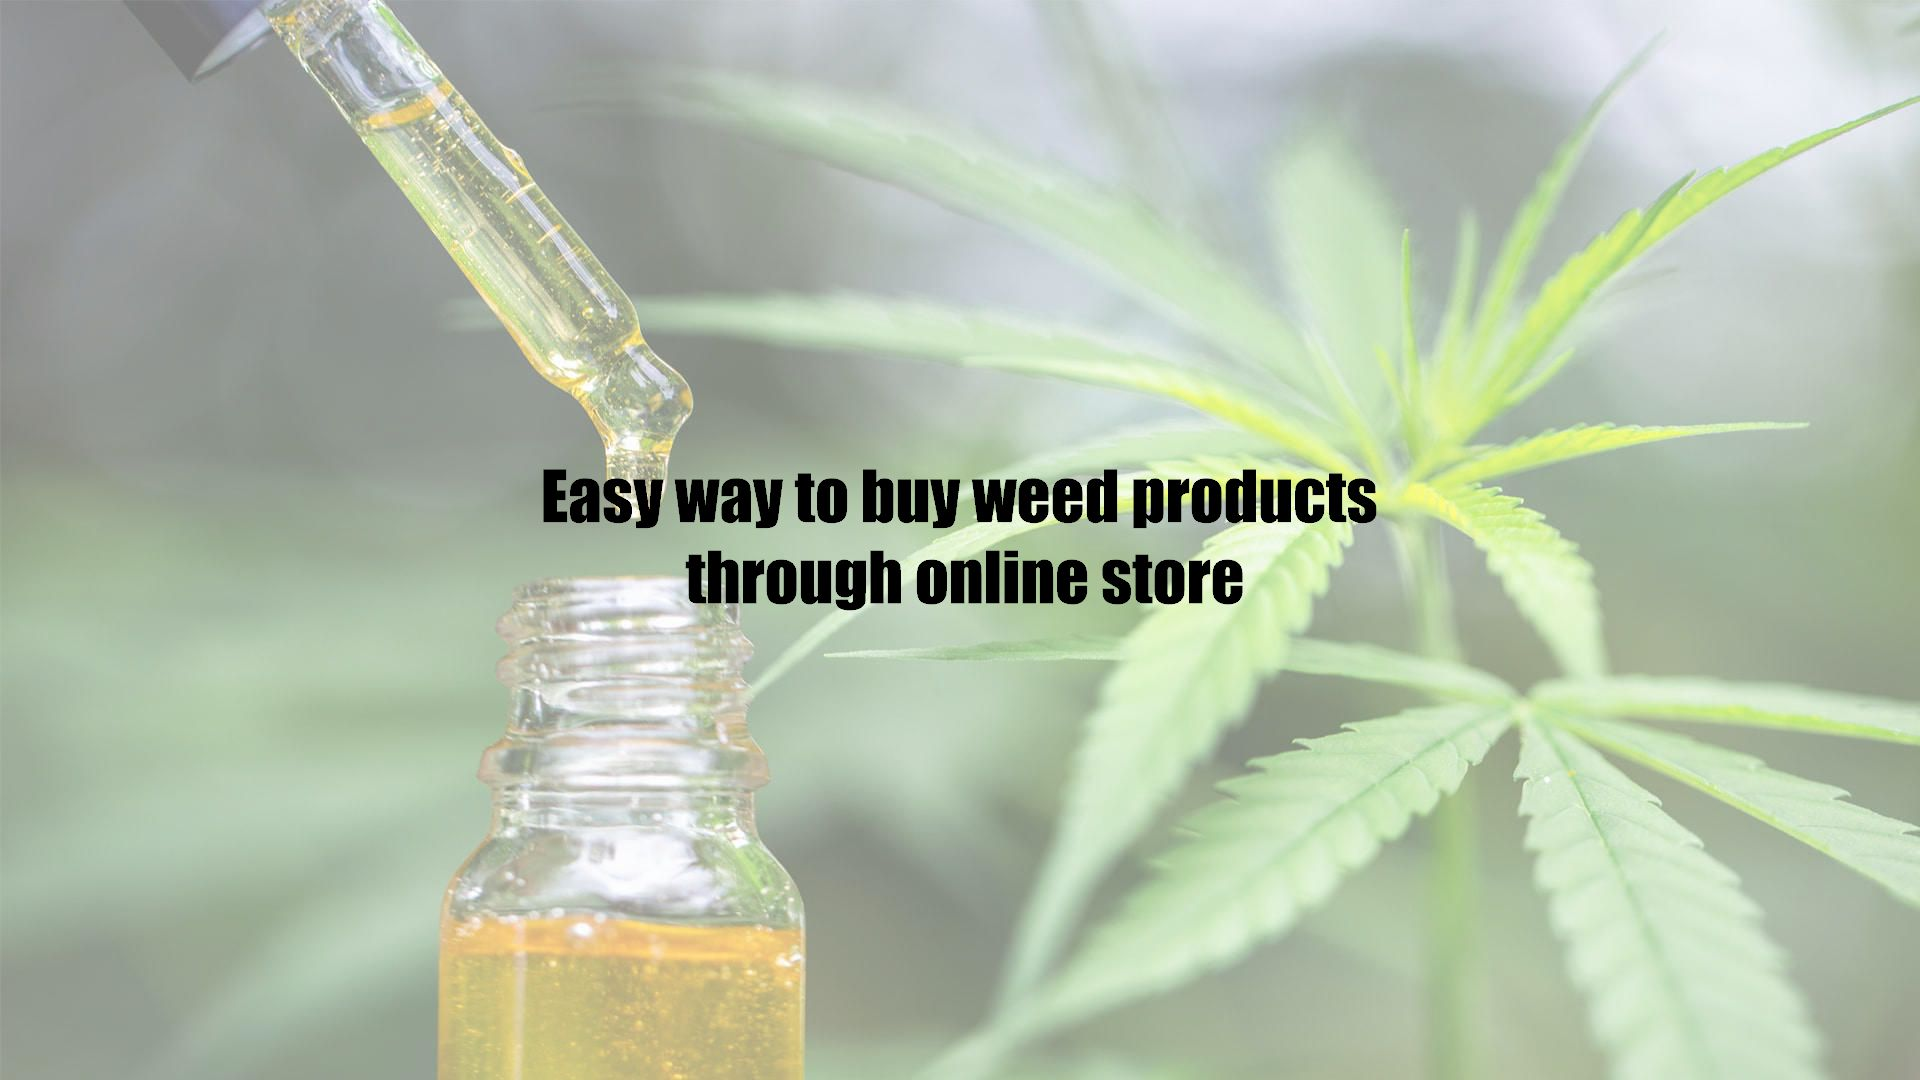 Easy way to buy weed products through online store